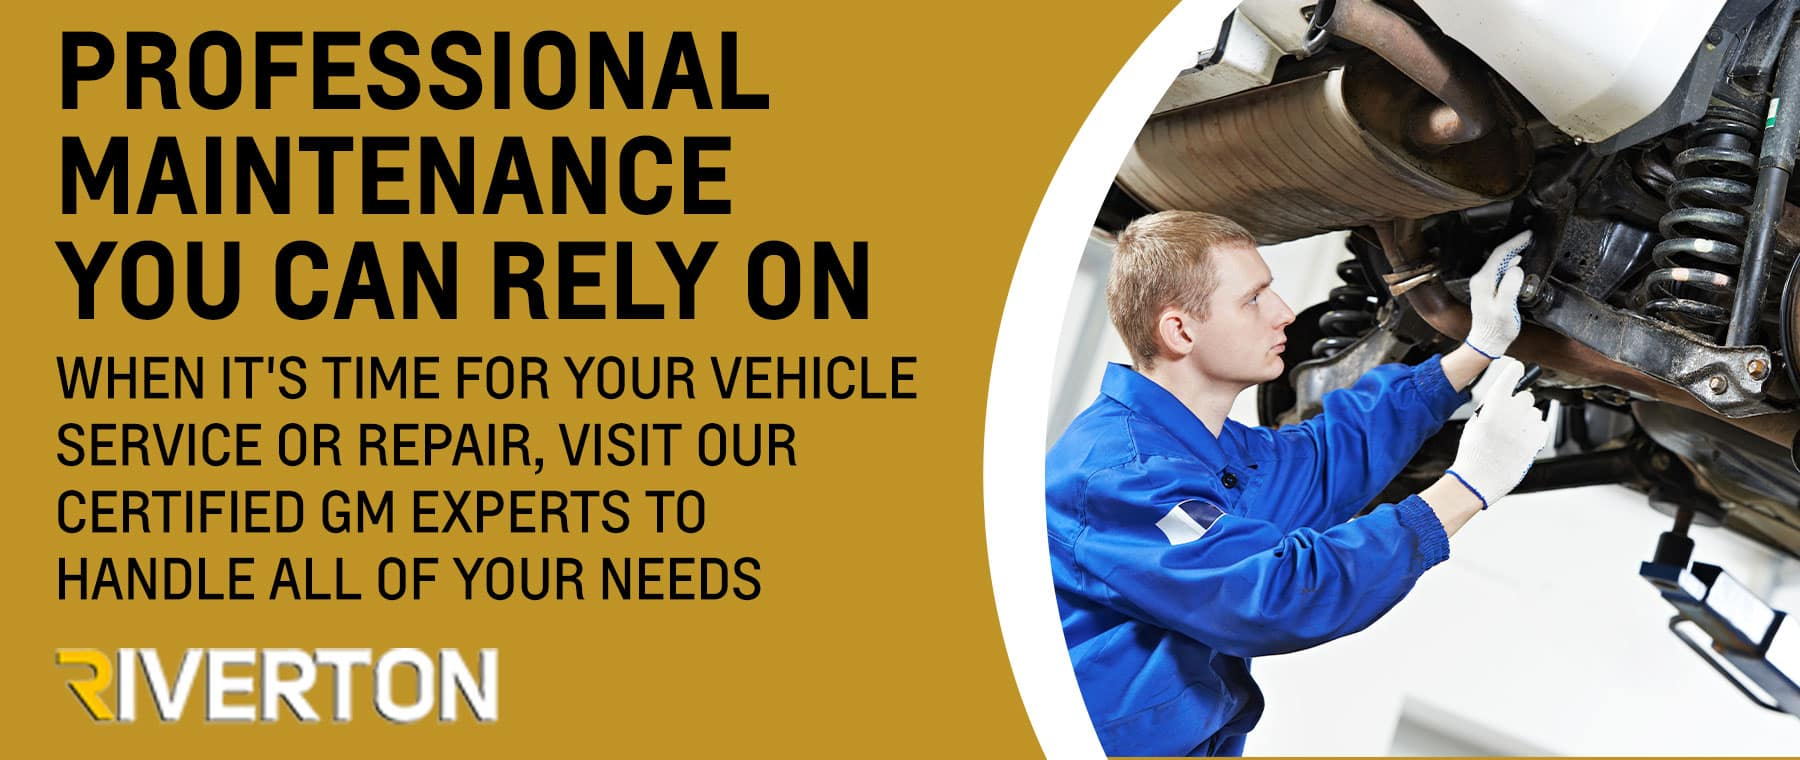 Professional Maintenance You Can Rely On When it's time for your vehicle service or repair, visit our Certified GM experts to handle all of your needs